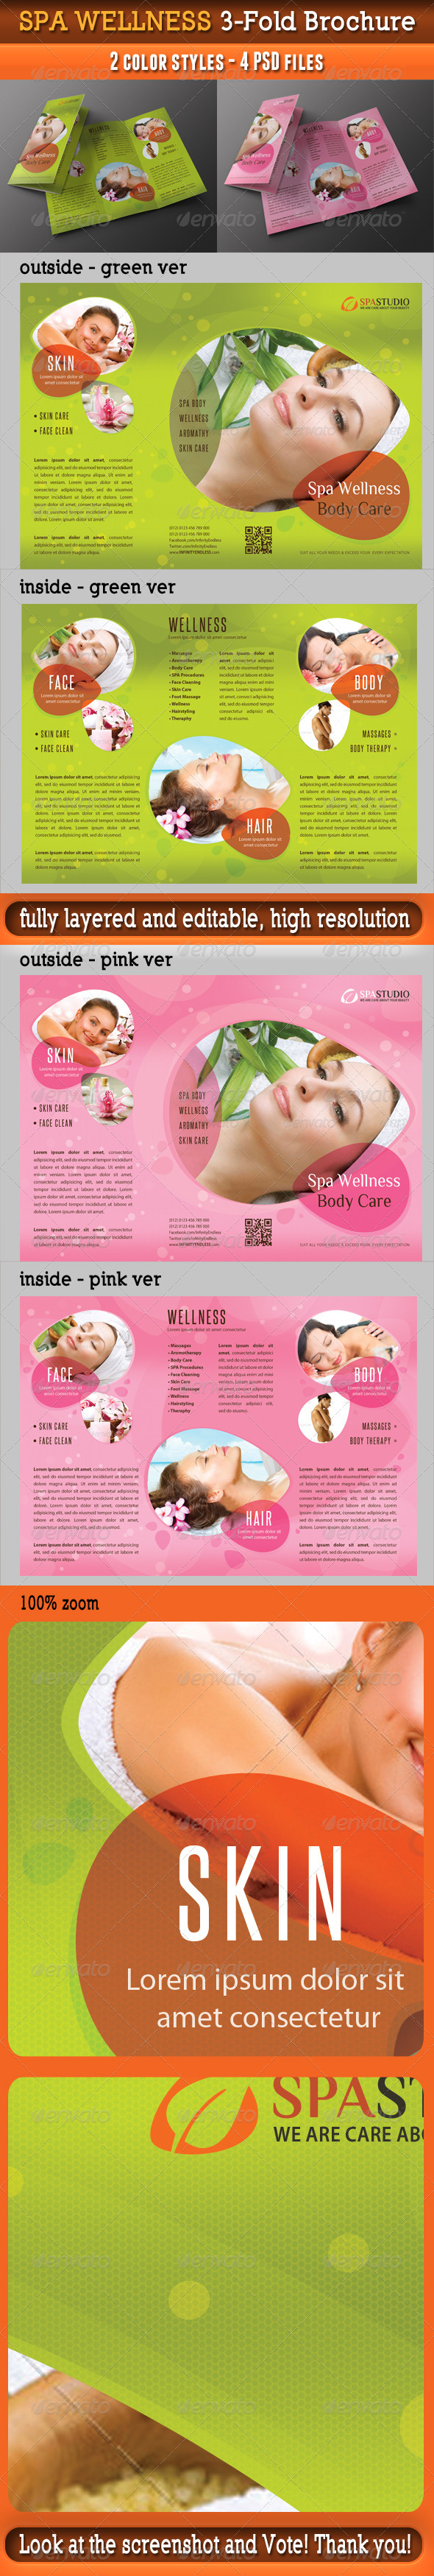 Spa Wellness 3-Fold Brochure 02 - Informational Brochures